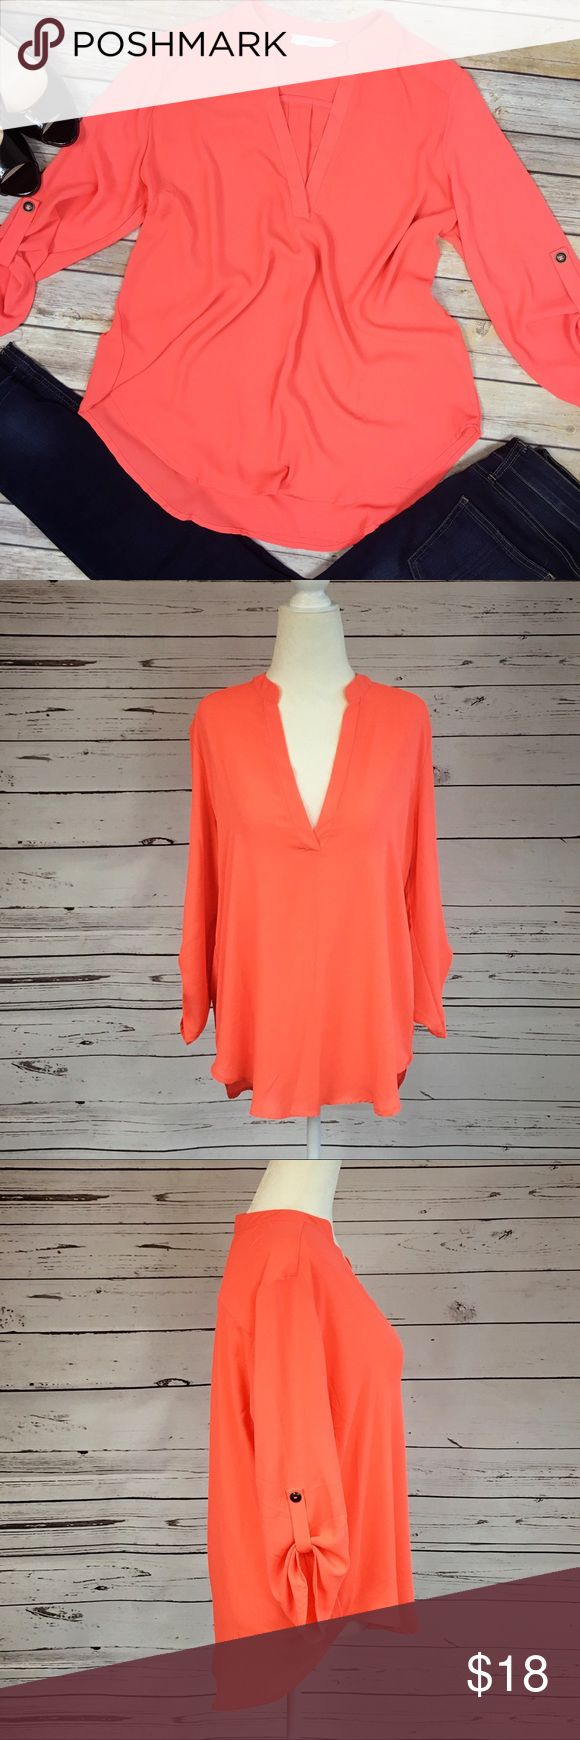 Lush High Low Coral Blouse Pretty coral blouse with button tab sleeves & High Low cut. Fabric content is 100 % polyester fabric has no stretch to it. Top of shoulder to bottom hem front side is approximately 25 1/2 inches, backside 28 1/2 inches, armpit to armpit is approximately 22 1/2 inches. Excellent used condition, no flaws. Color is best depicted in the first photo. Lush Tops Blouses